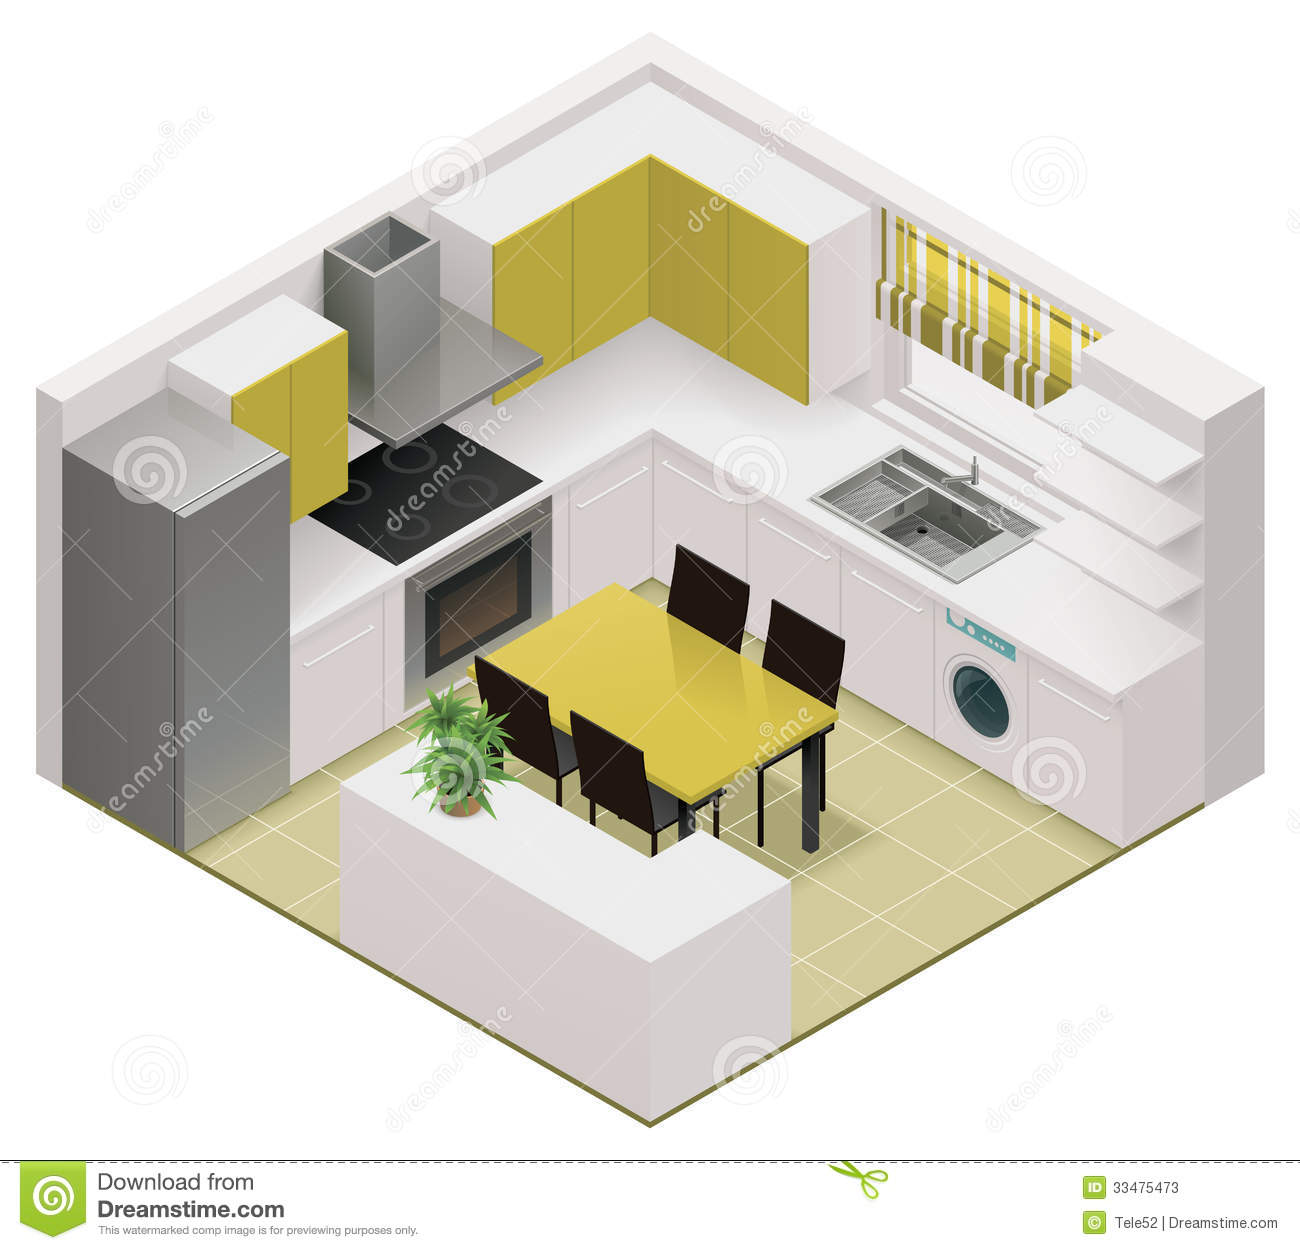 Vintage Laundry Room Decor With Vintage Laundry H ers likewise Travel Brochure Designs Ex les in addition 536069161878888932 likewise Stock Photos Vector Isometric Kitchen Icon Detailed Representing Interior Image33475473 additionally Office Floor Plan. on kitchen layout planner